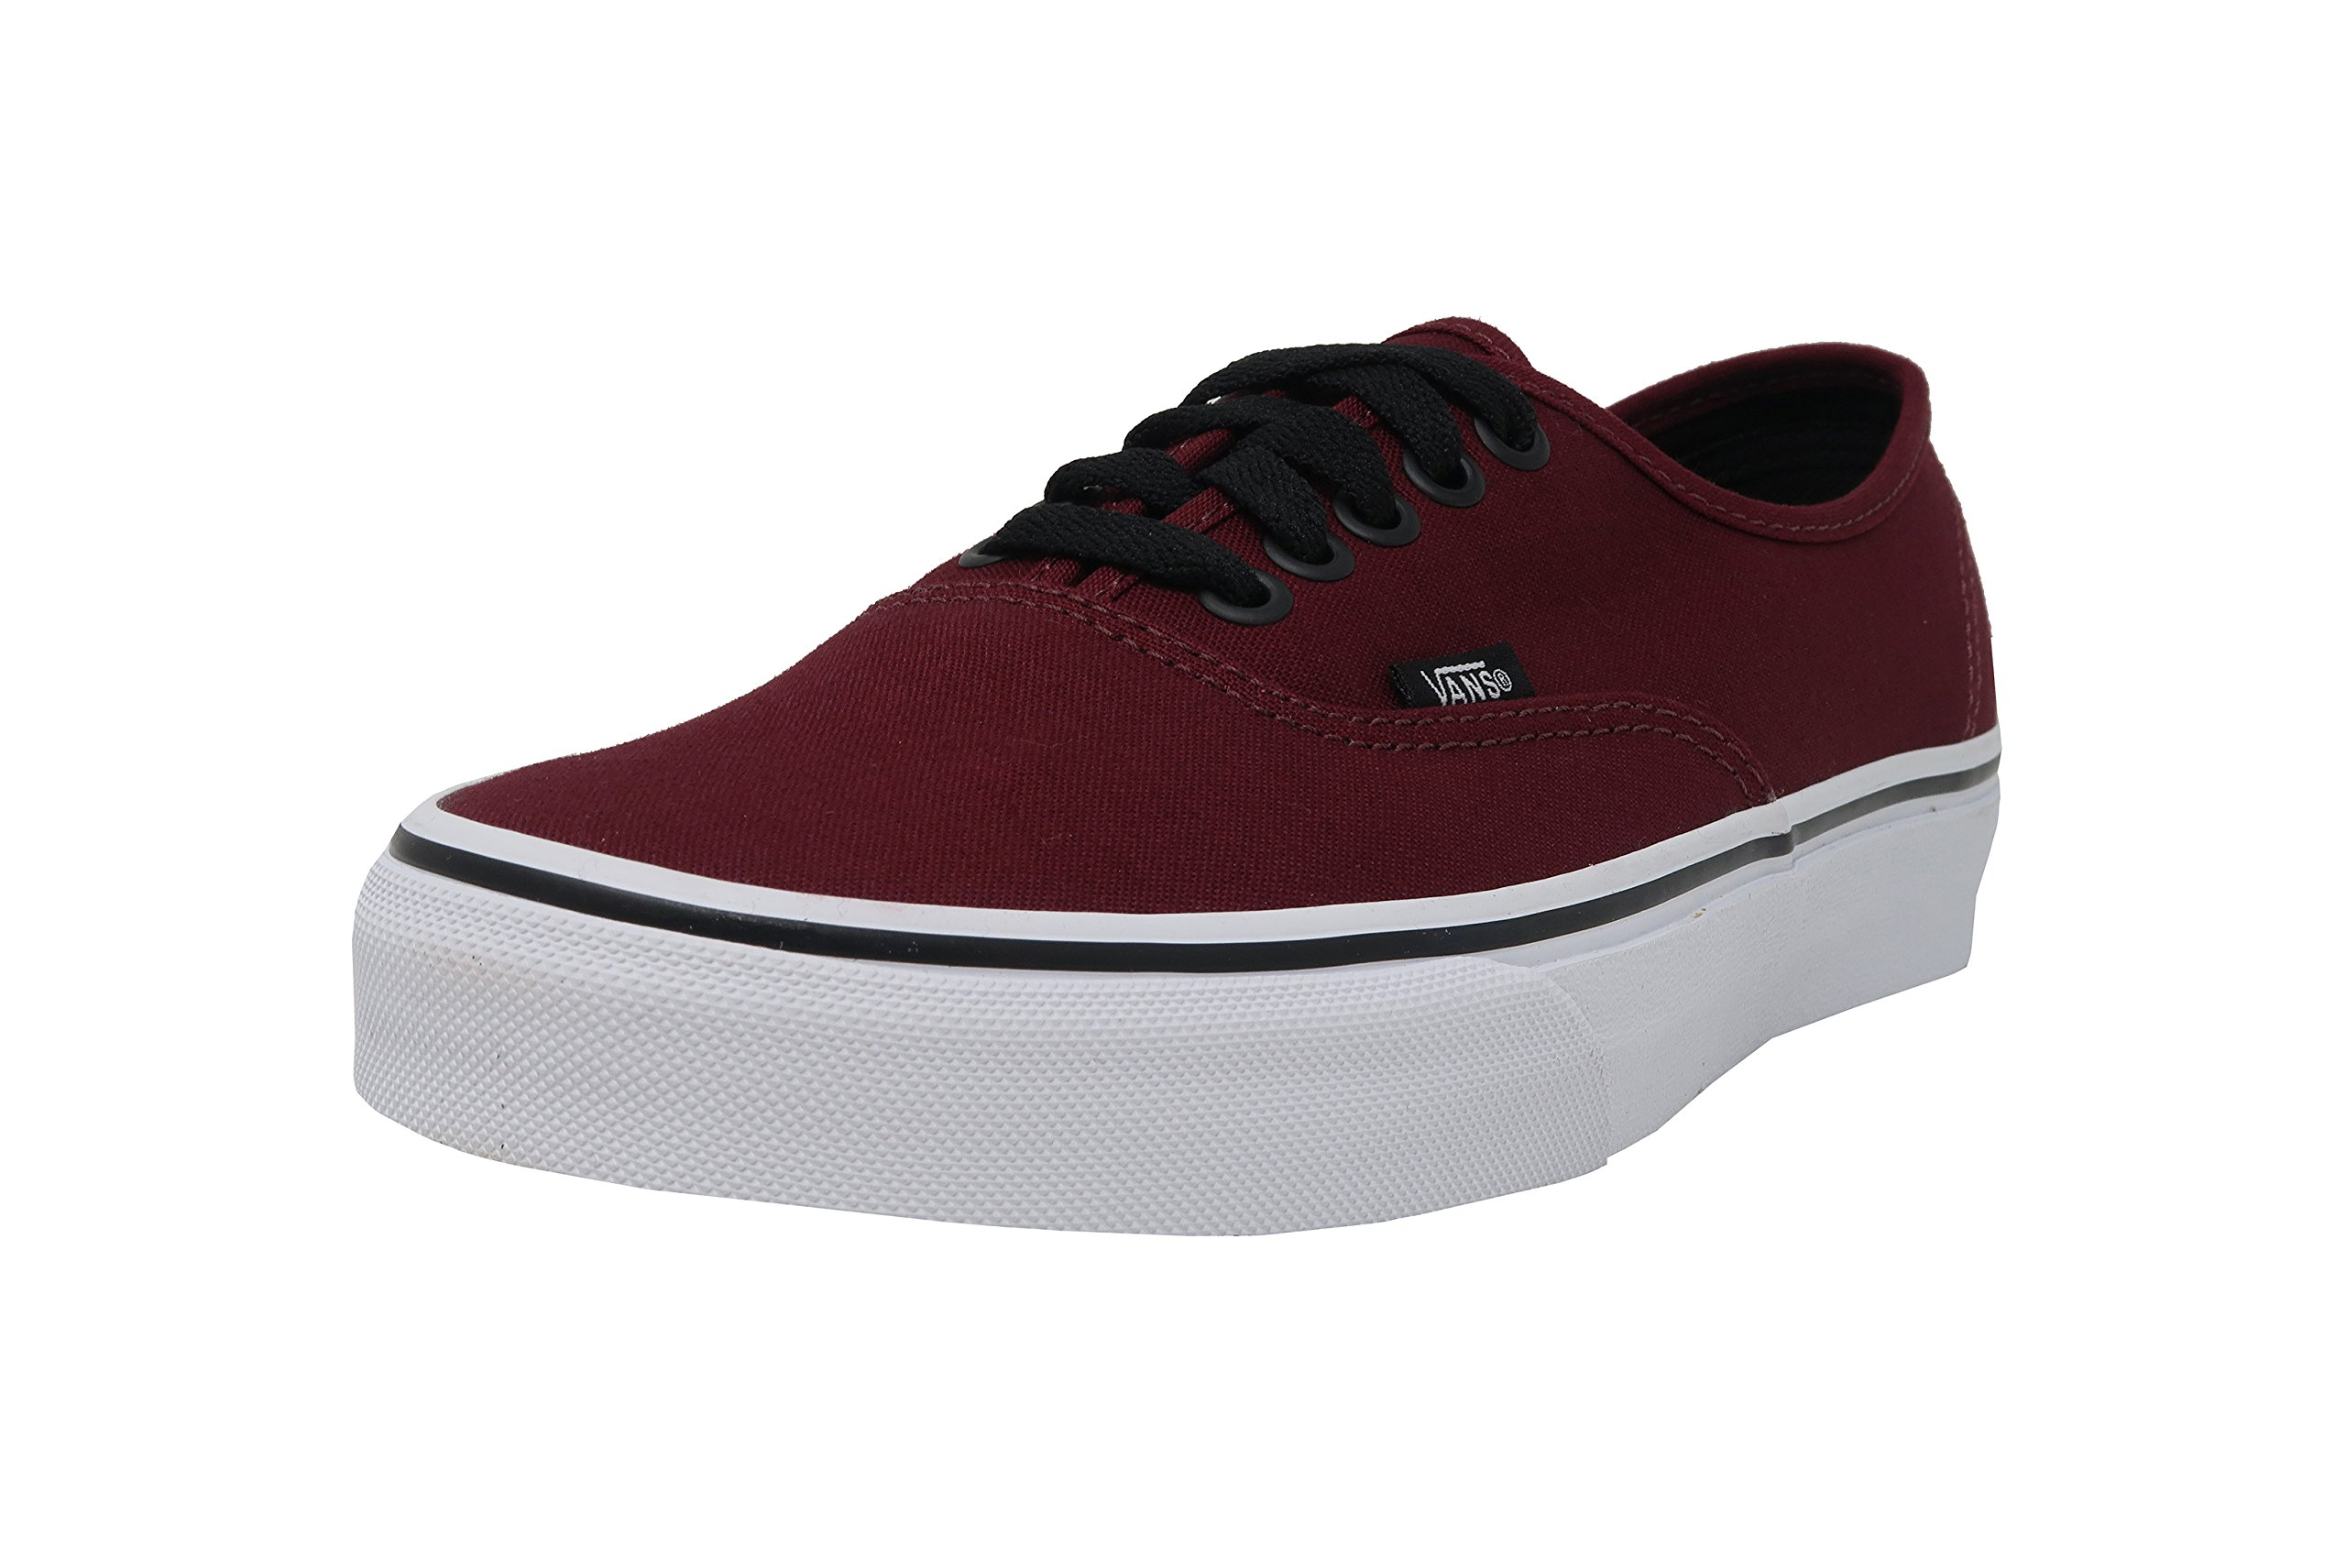 6569a4218ed611 Galleon - Vans Unisex Authentic Solid Canvas Skateboard Sneakers (12 D(M)  US